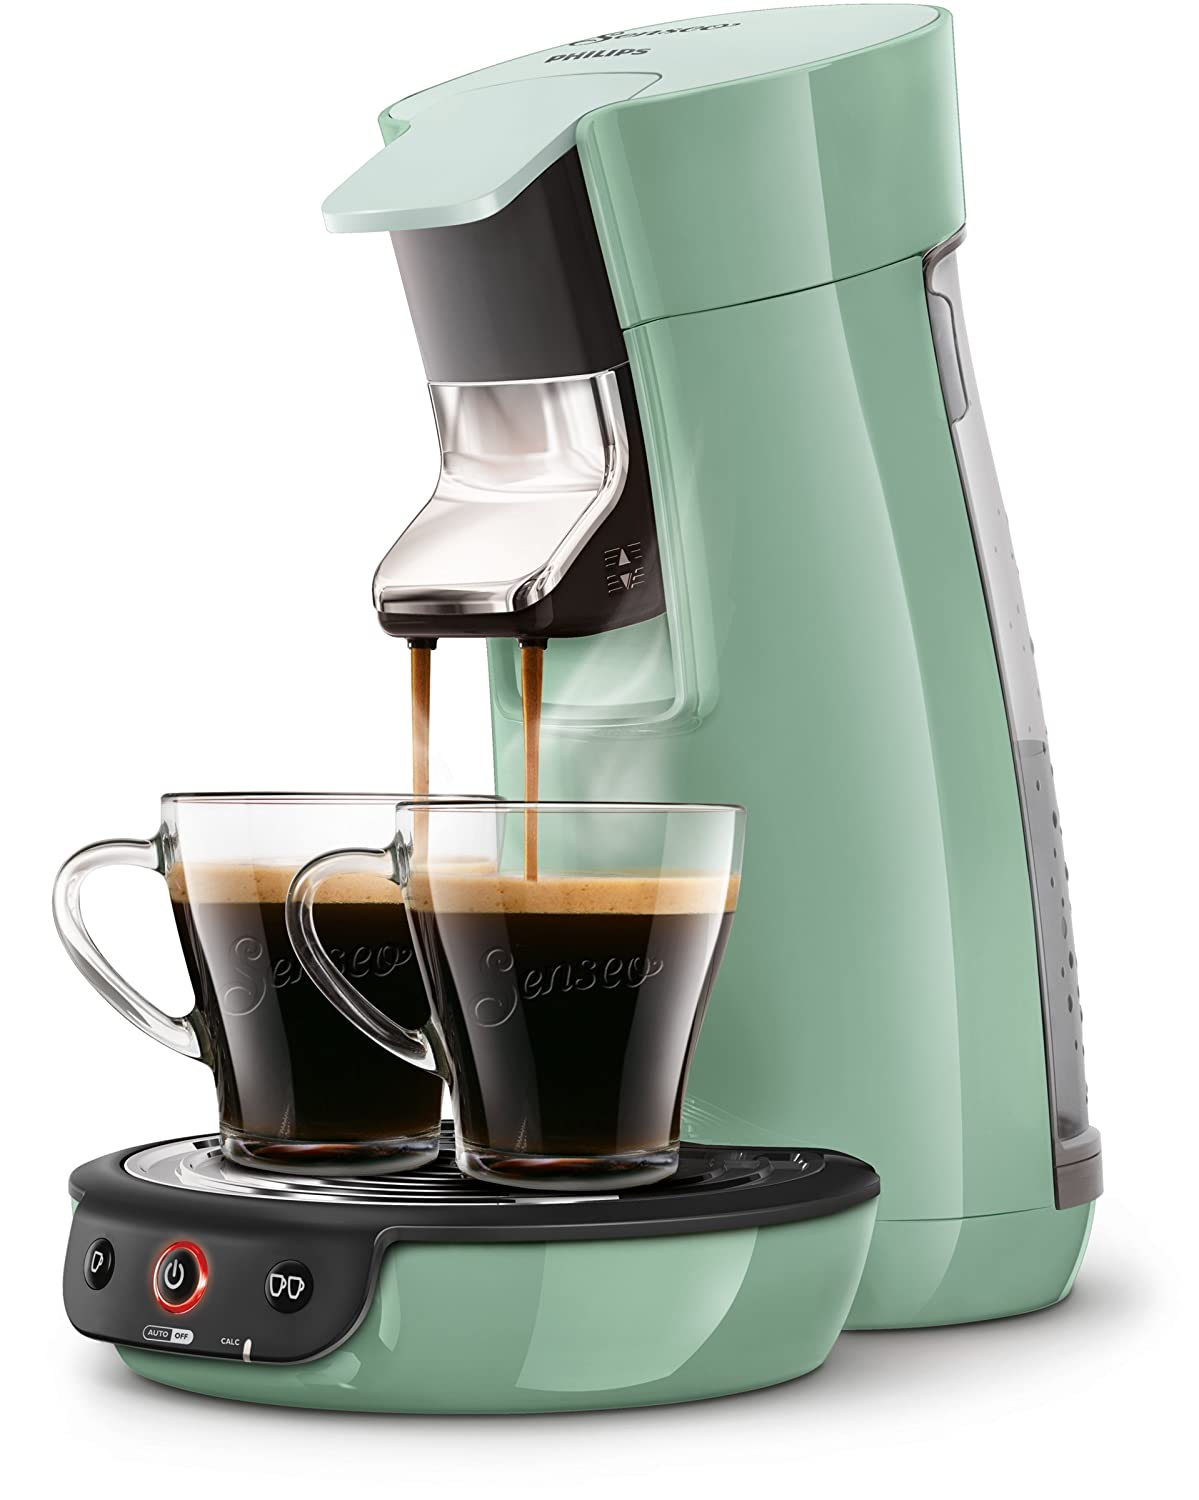 Senseo Viva Cafe HD7829/10 Pod coffee machine 0.9L Green coffee maker - coffee makers (freestanding, Pod coffee machine, Coffee pod, Caffe crema, Green, Buttons) SENSEO®